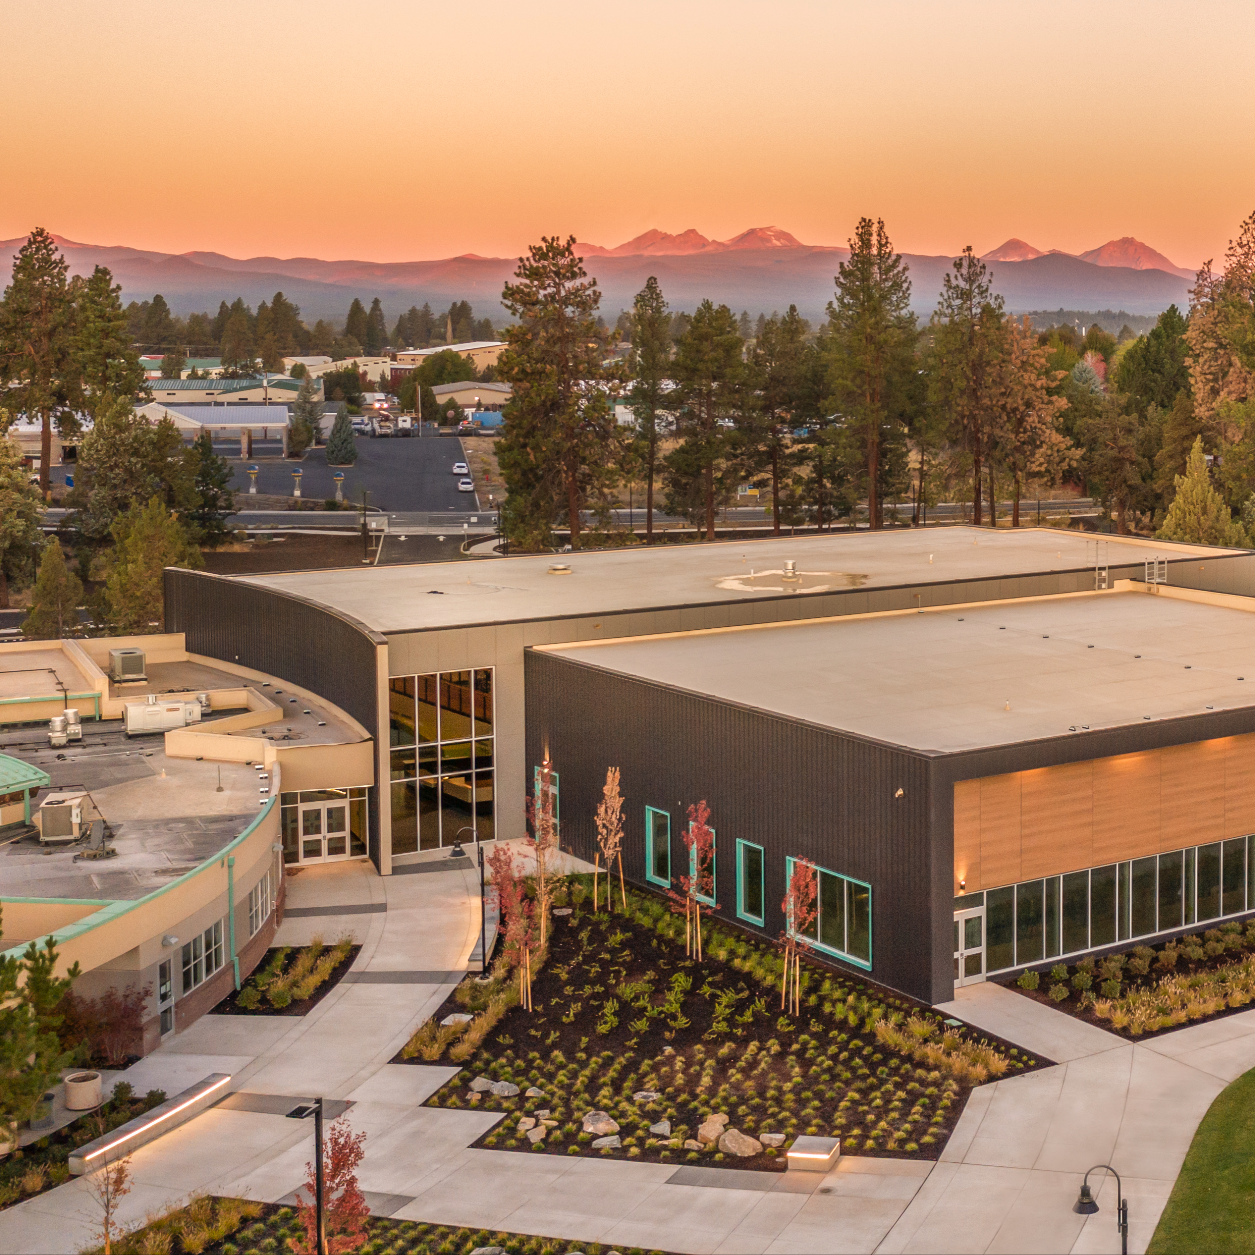 image of Larkspur Community Center from the air